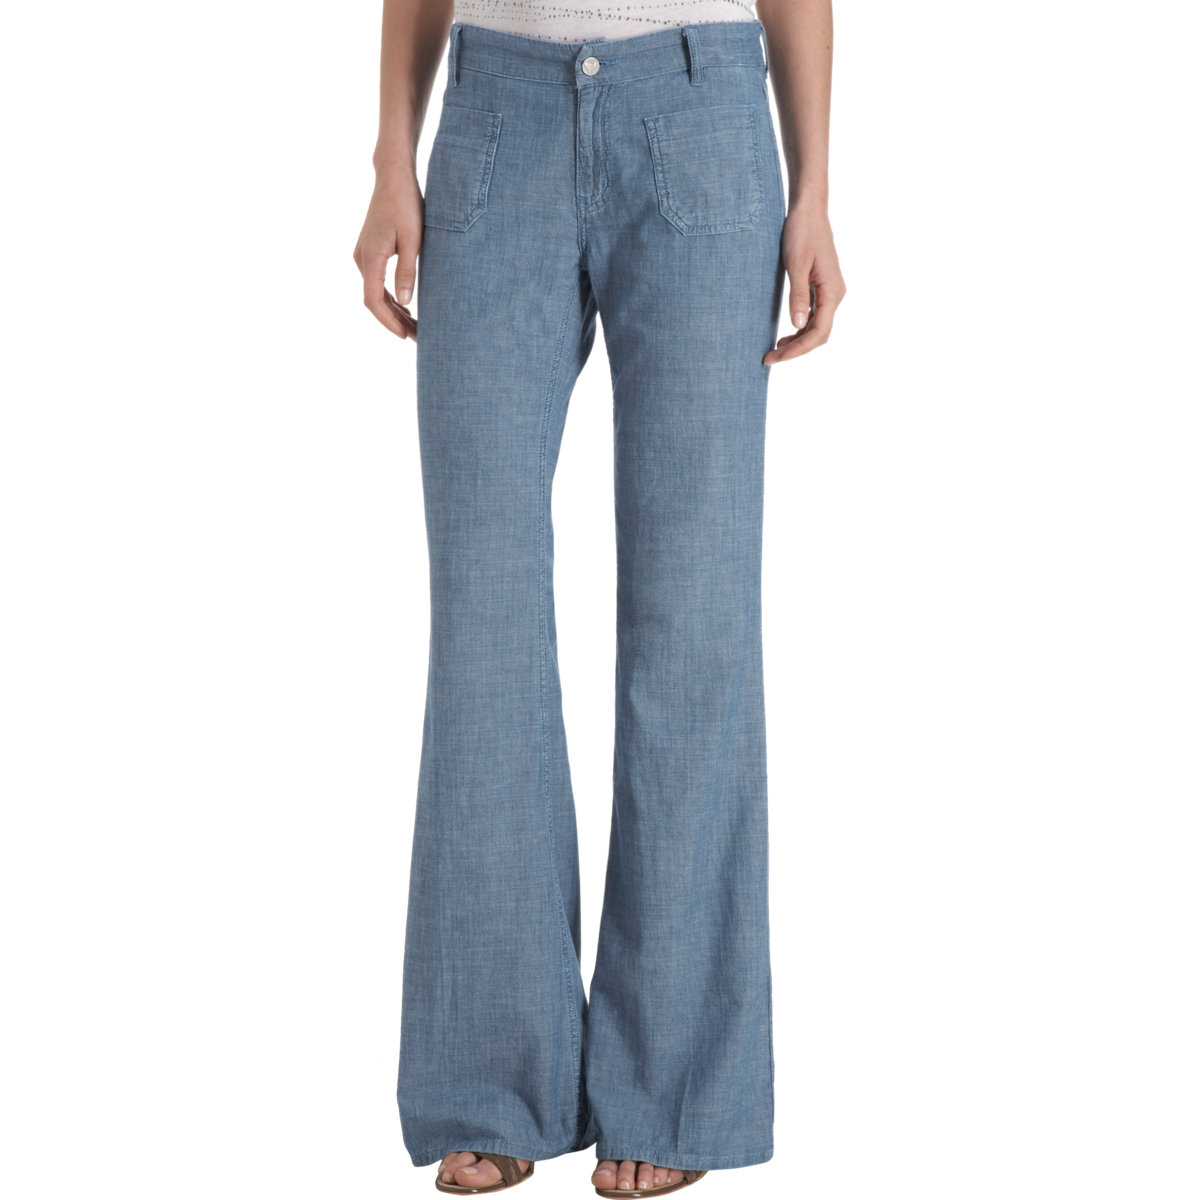 mih jeans miramar mid rise wide leg chambray jeans in blue